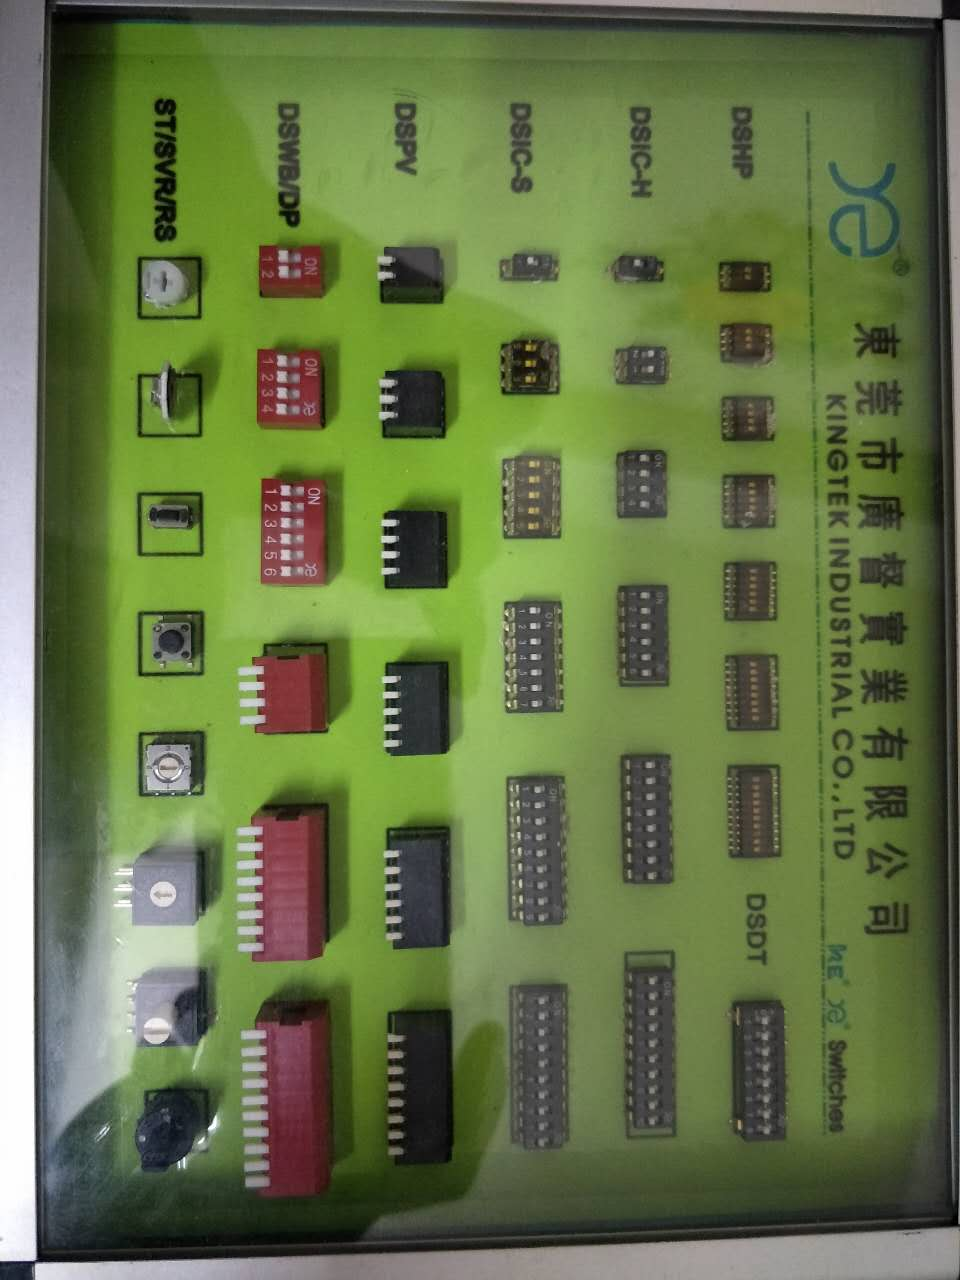 DIP Switches Series ,TACT Switch Series ,Tri-state DIP Switches,Semifixed Variable Resistors